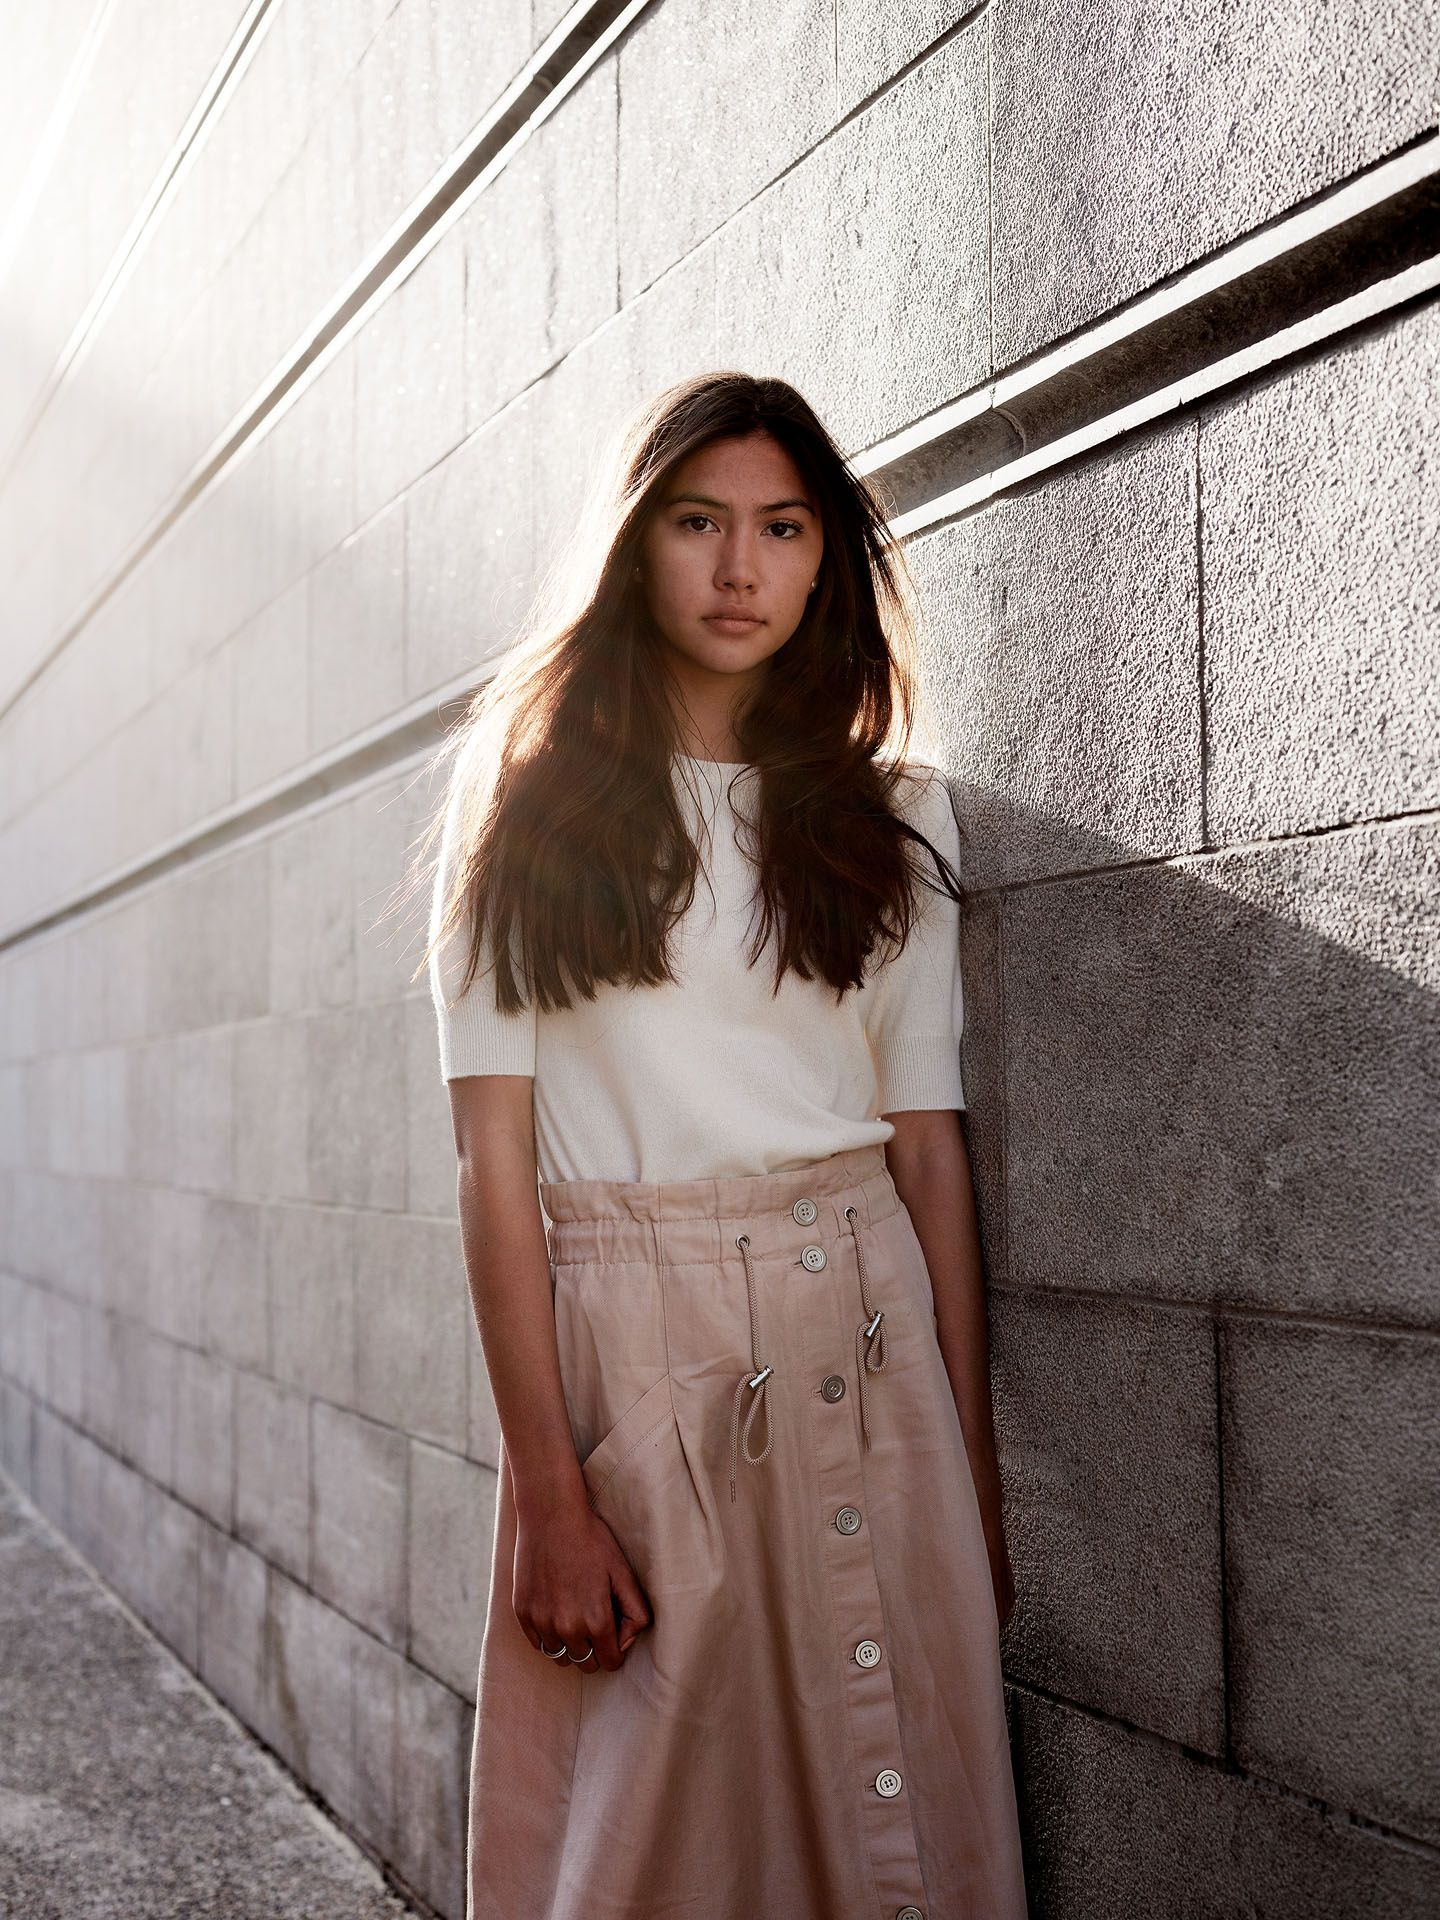 woman of colour model Anaïs posing against concrete wall with the sun on her back looking at camera wearing soft white shirt and pink skirt for the spring-summer collection of Swell & Ginger by Guillaume Simoneau